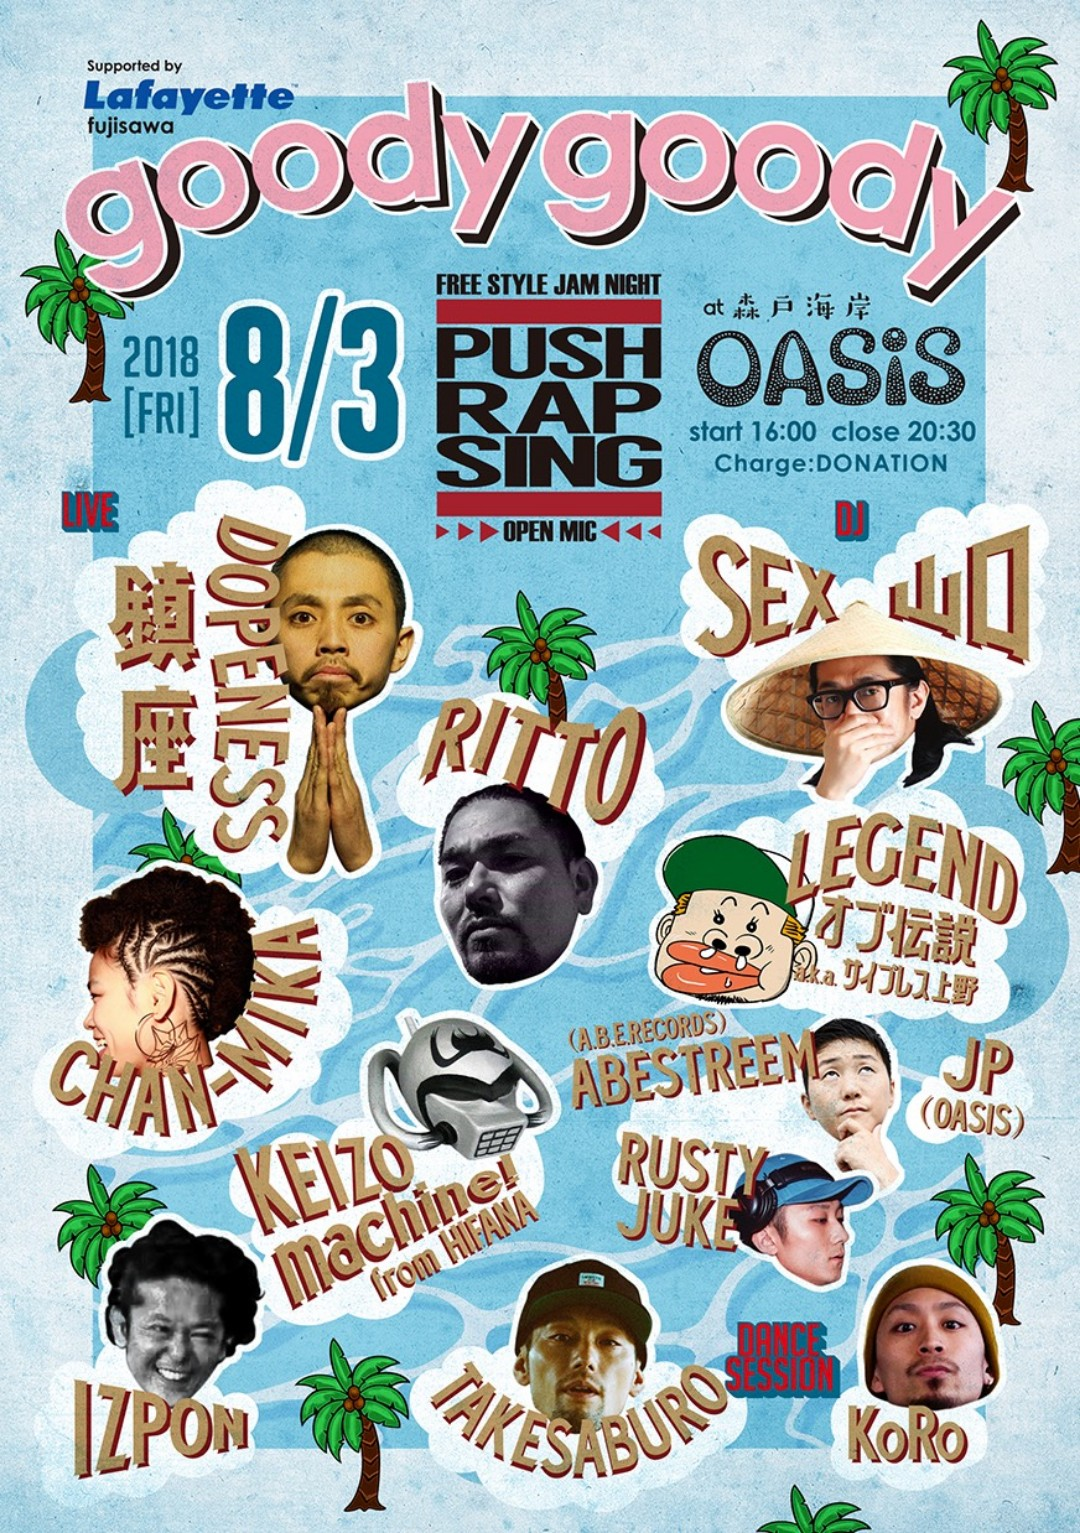 """""""goody goody × PUSH RAP SING"""" in 海の家OASIS   Suported by Lafayette fujisawa"""